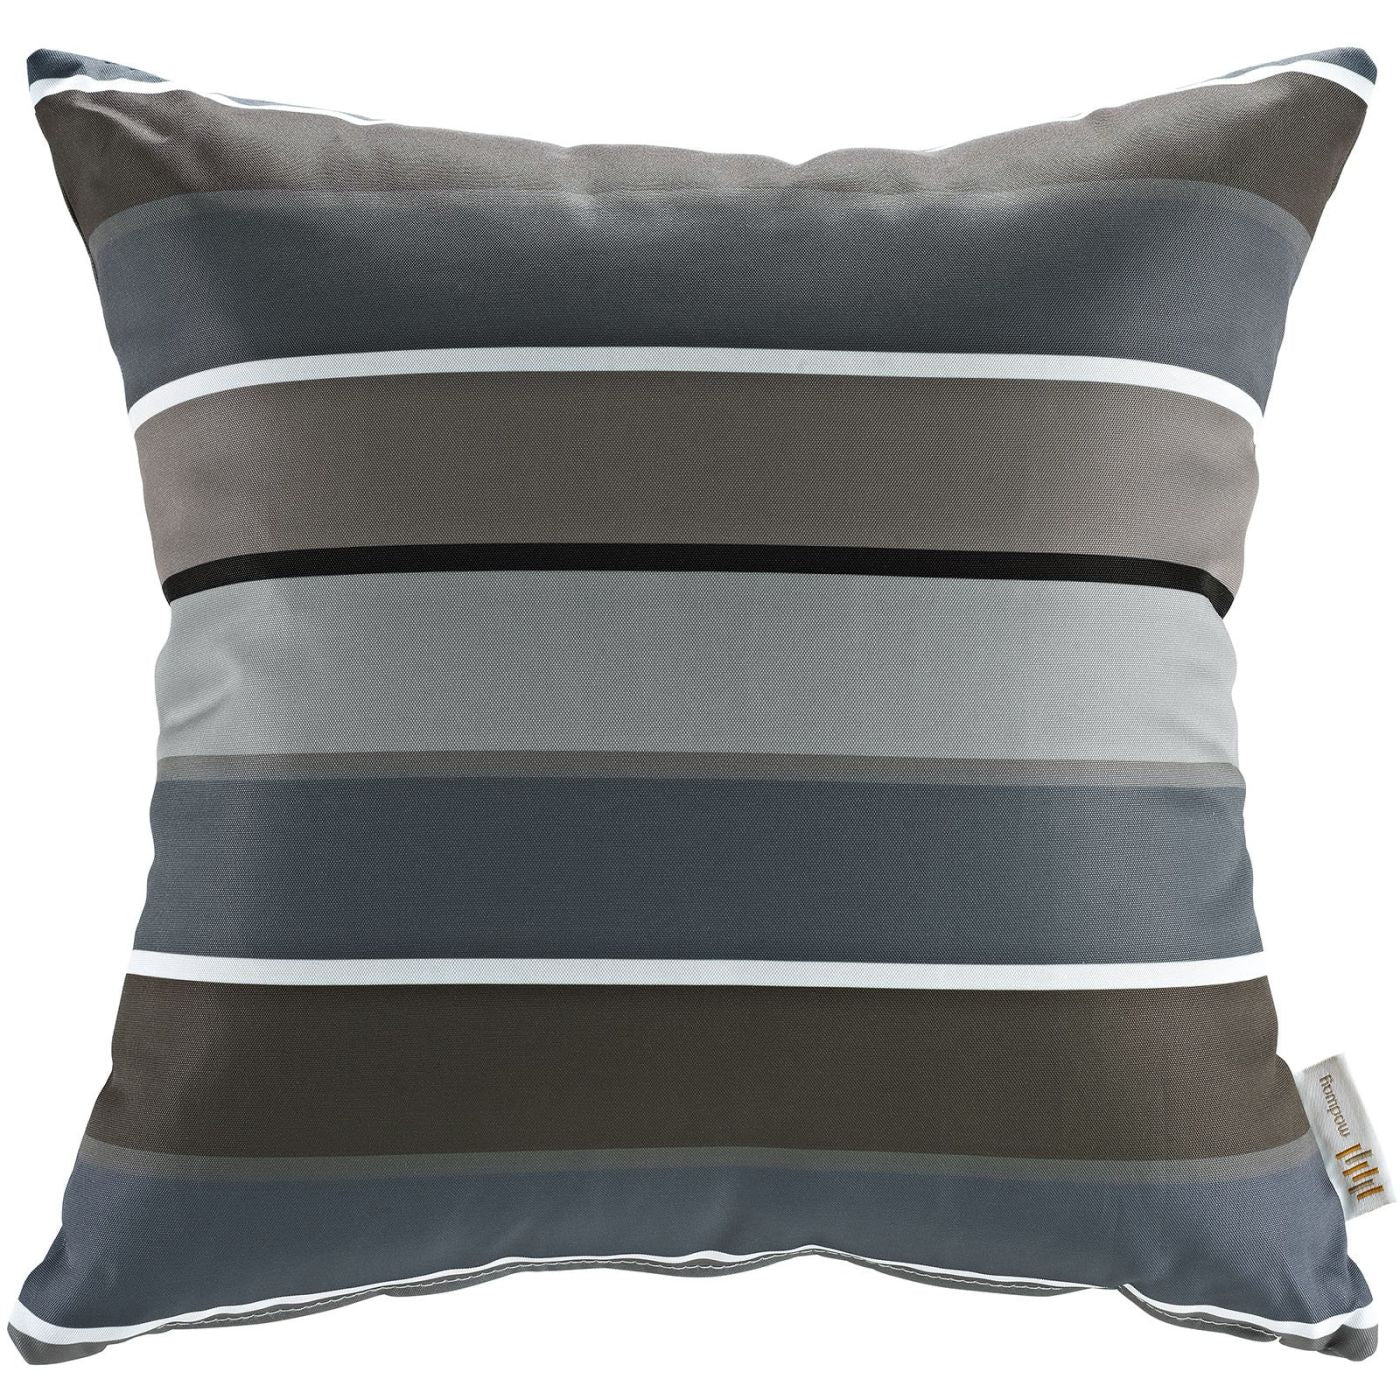 Modway Modway Outdoor Patio Pillow EEI 2156 STR ly $24 80 at